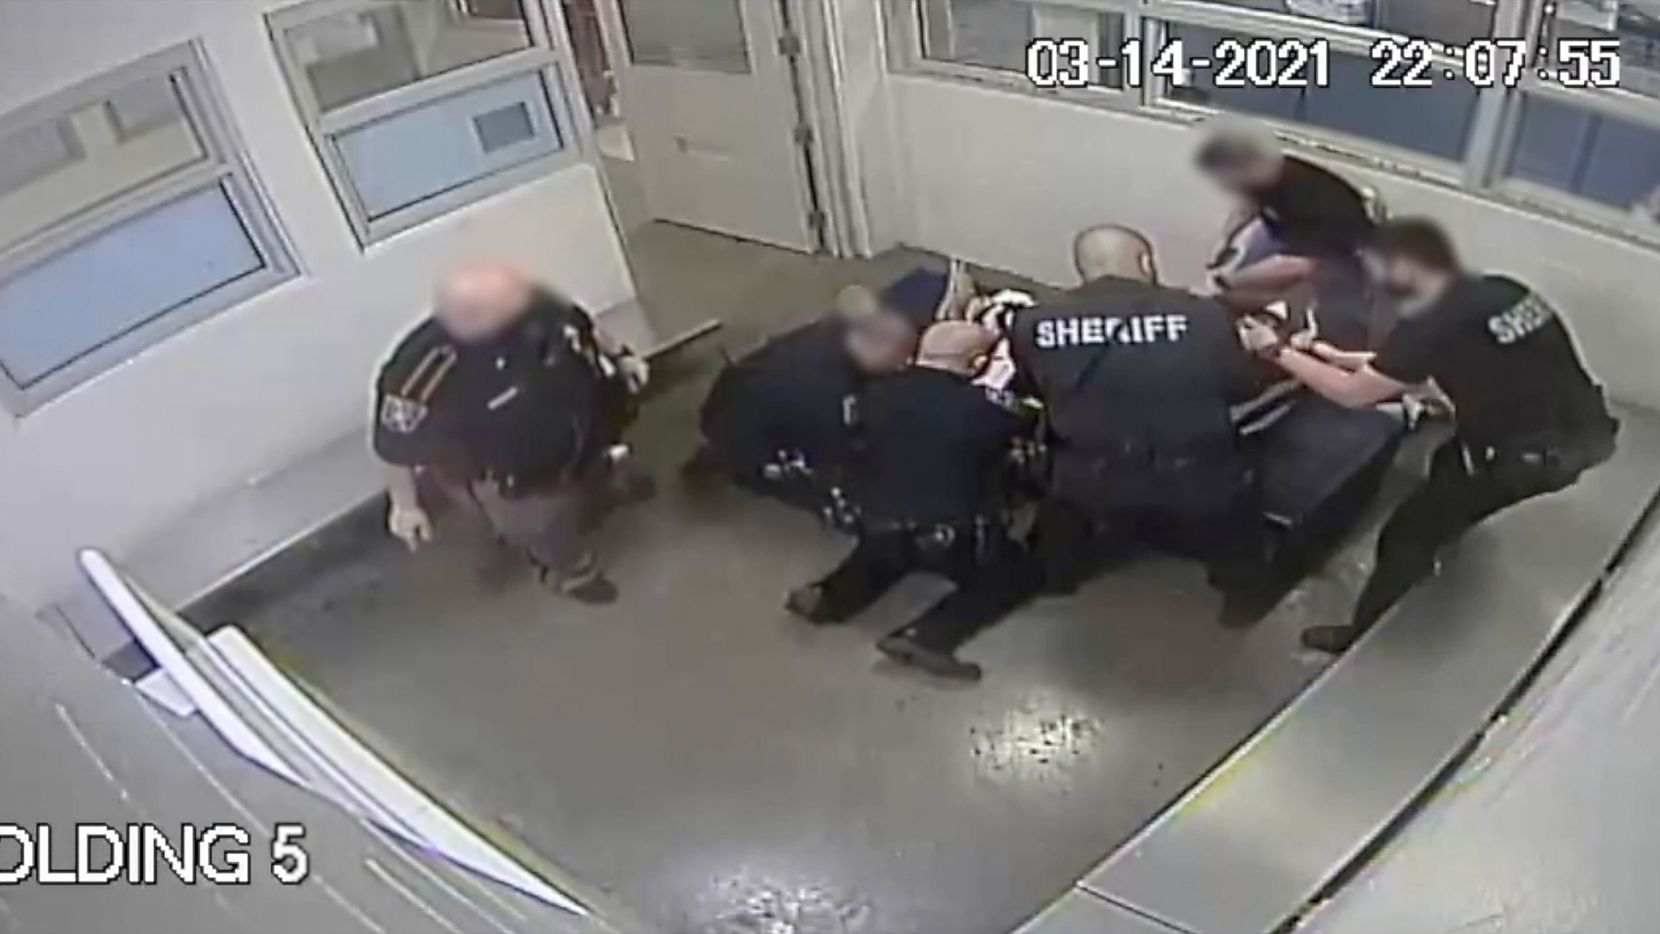 This image taken from video released by the Collin County Sheriff's Office shows jailers restraining Marvin Scott III before the 26-year-old's death while in custody at the Collin County Detention Center on March 14, 2021.